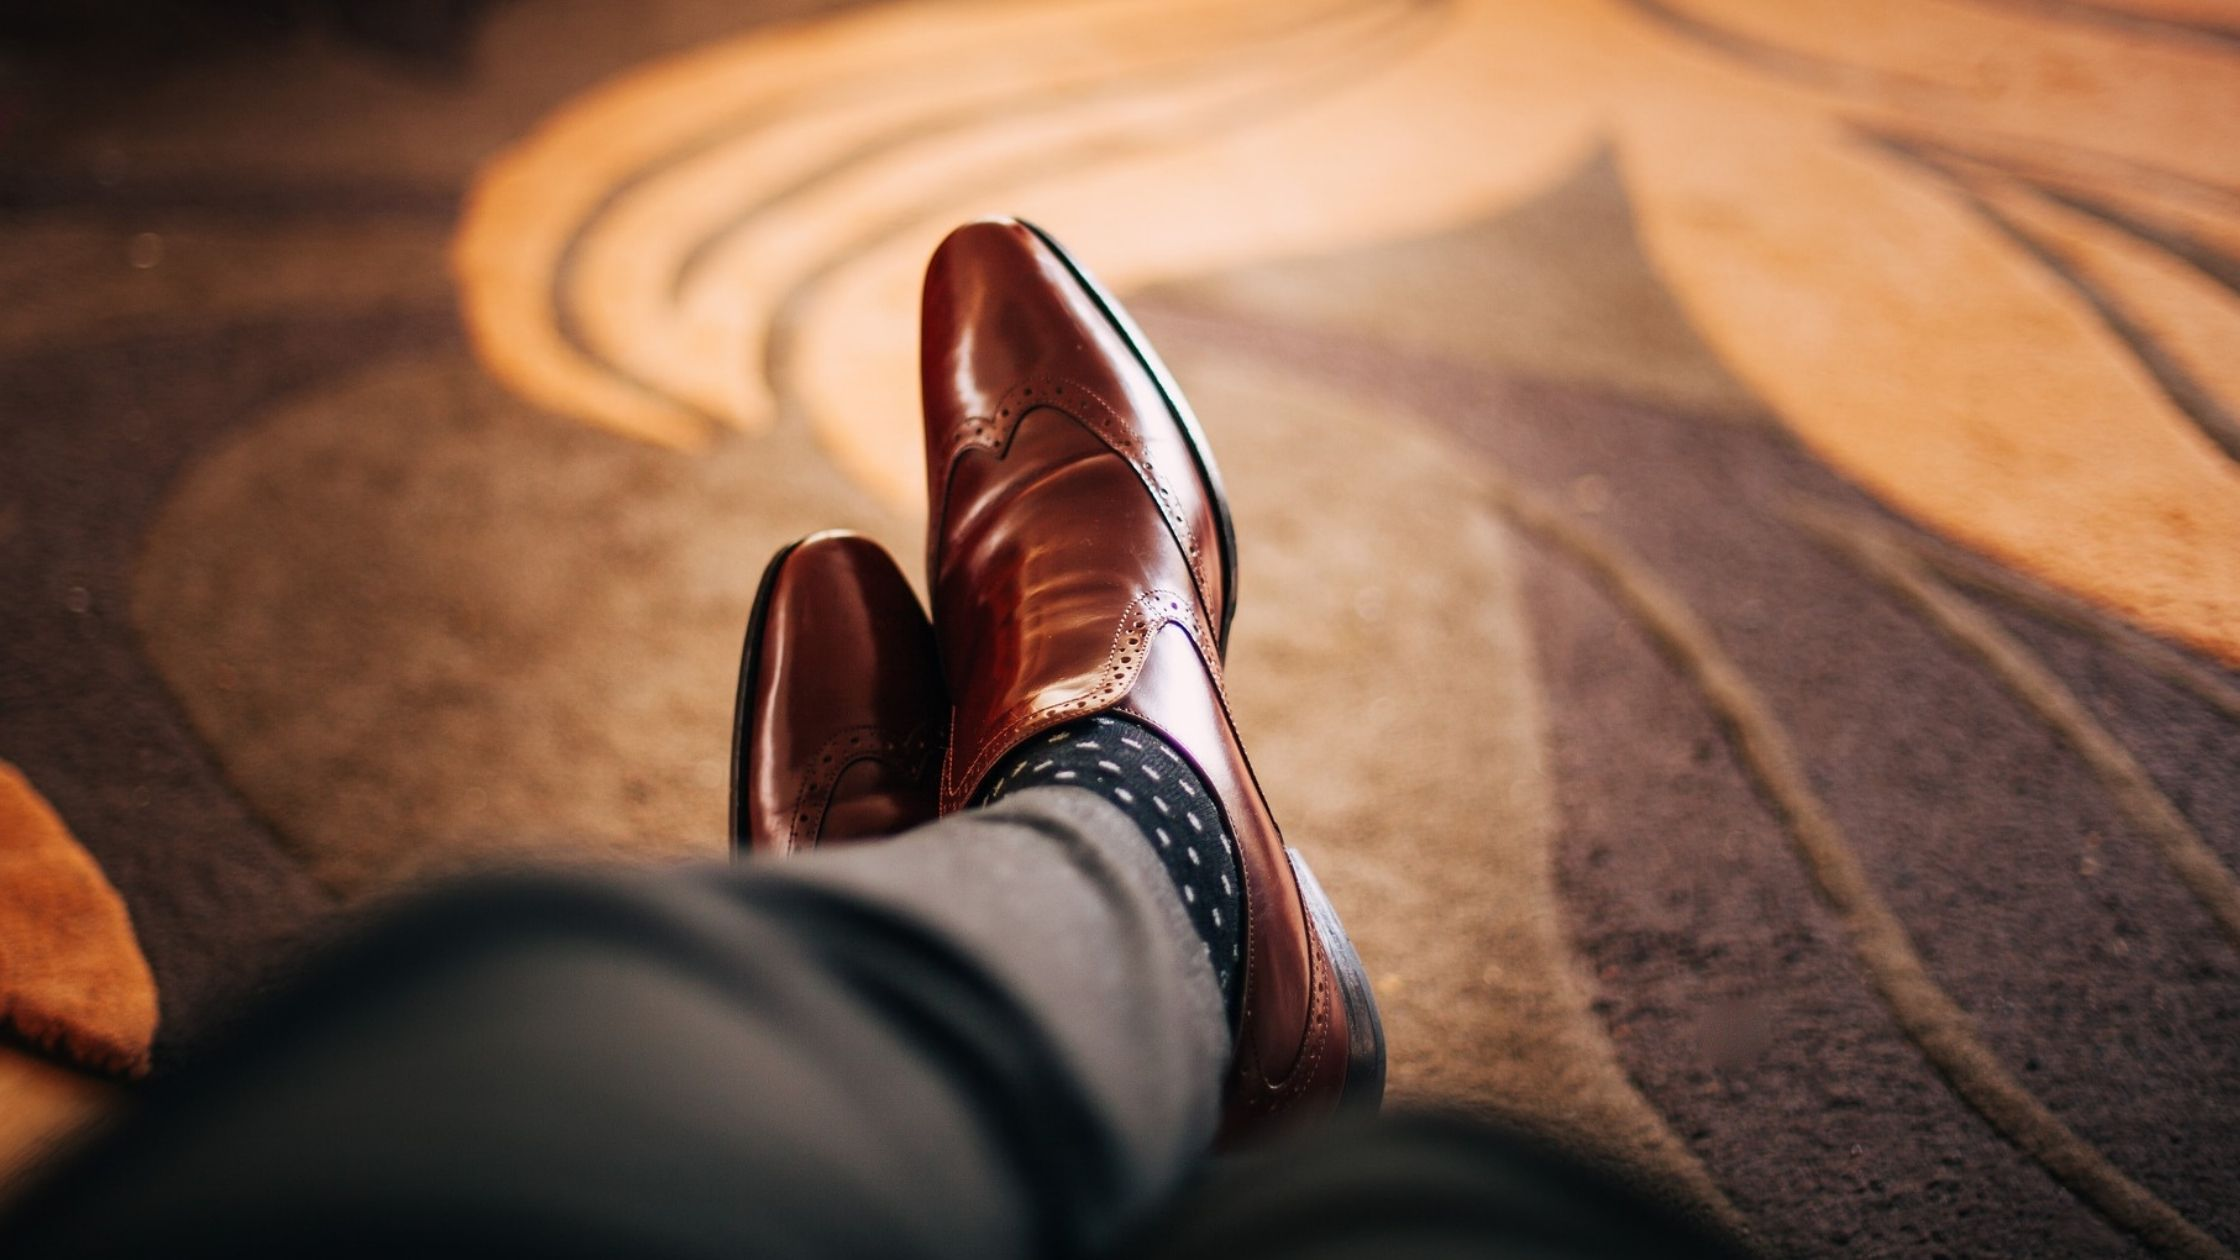 How to Take Care of Leather Shoes